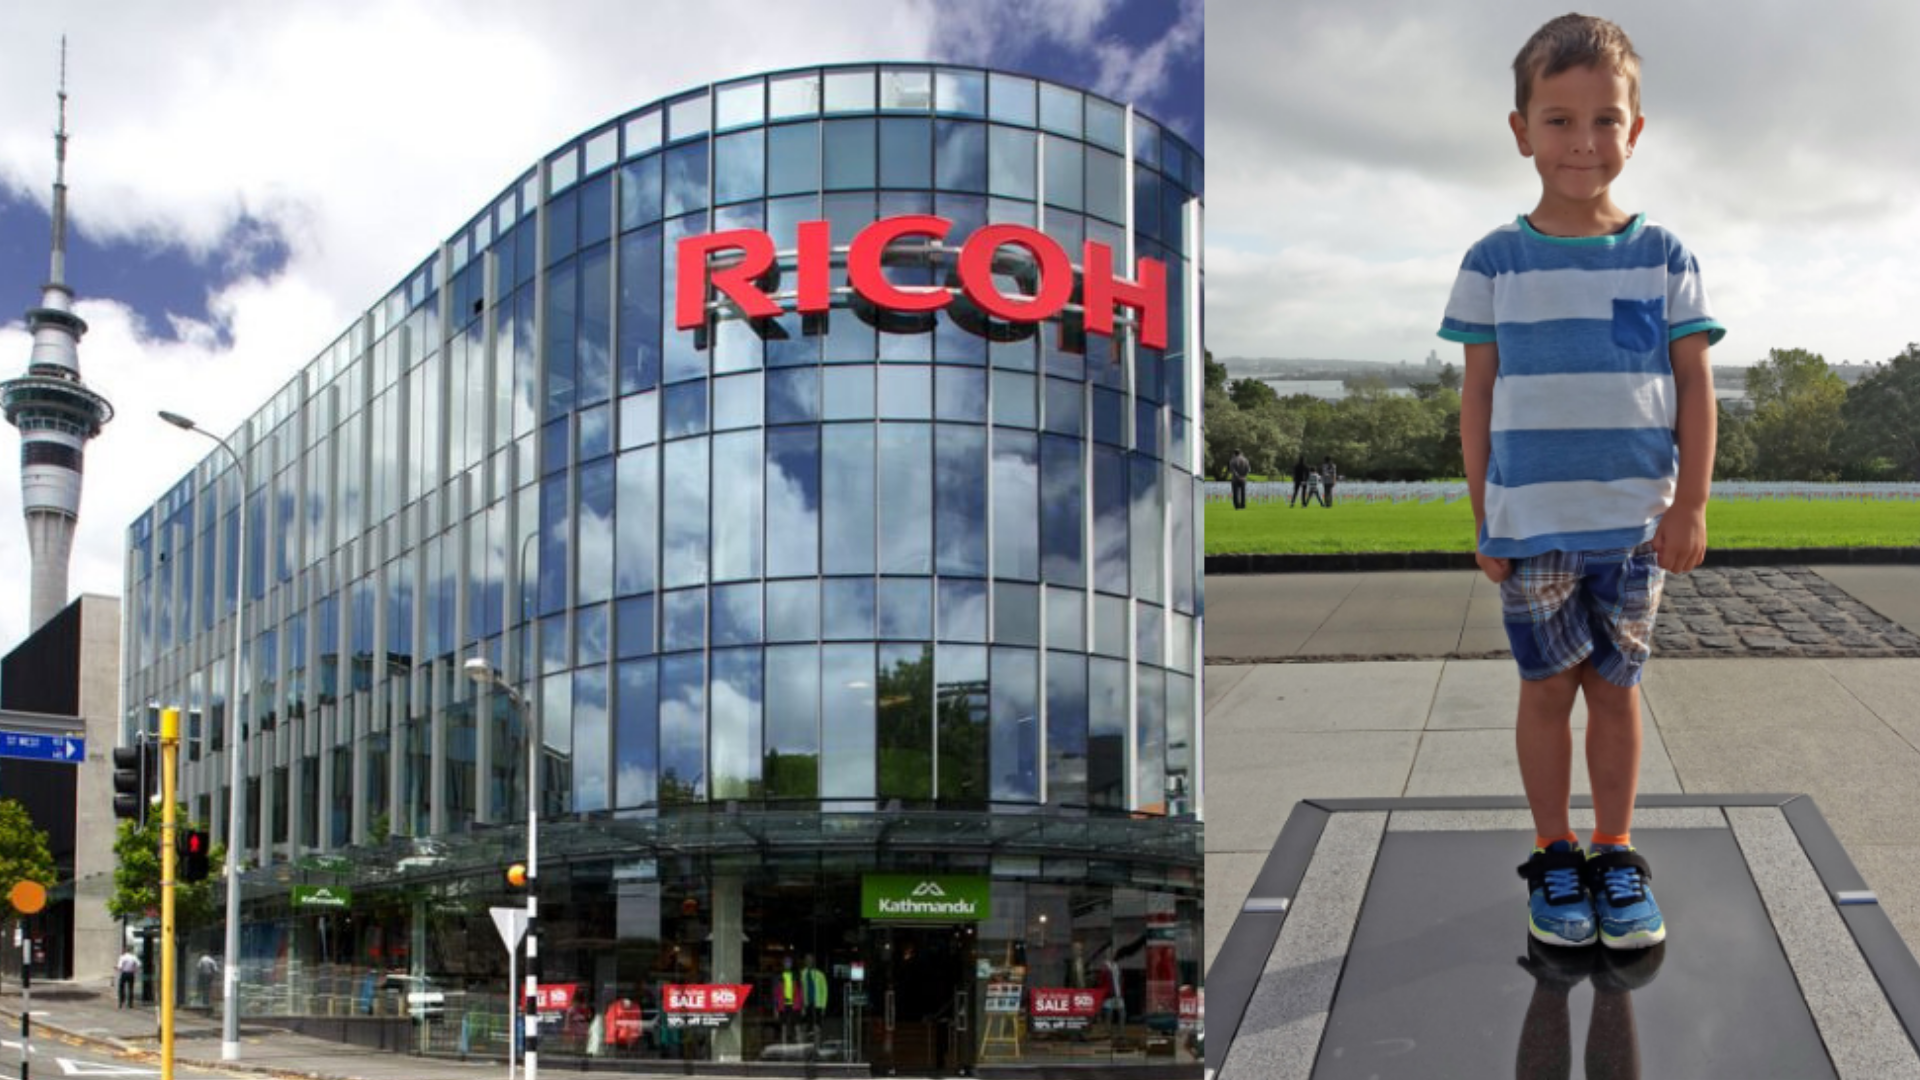 Ricoh – Helping kids achieve their best START